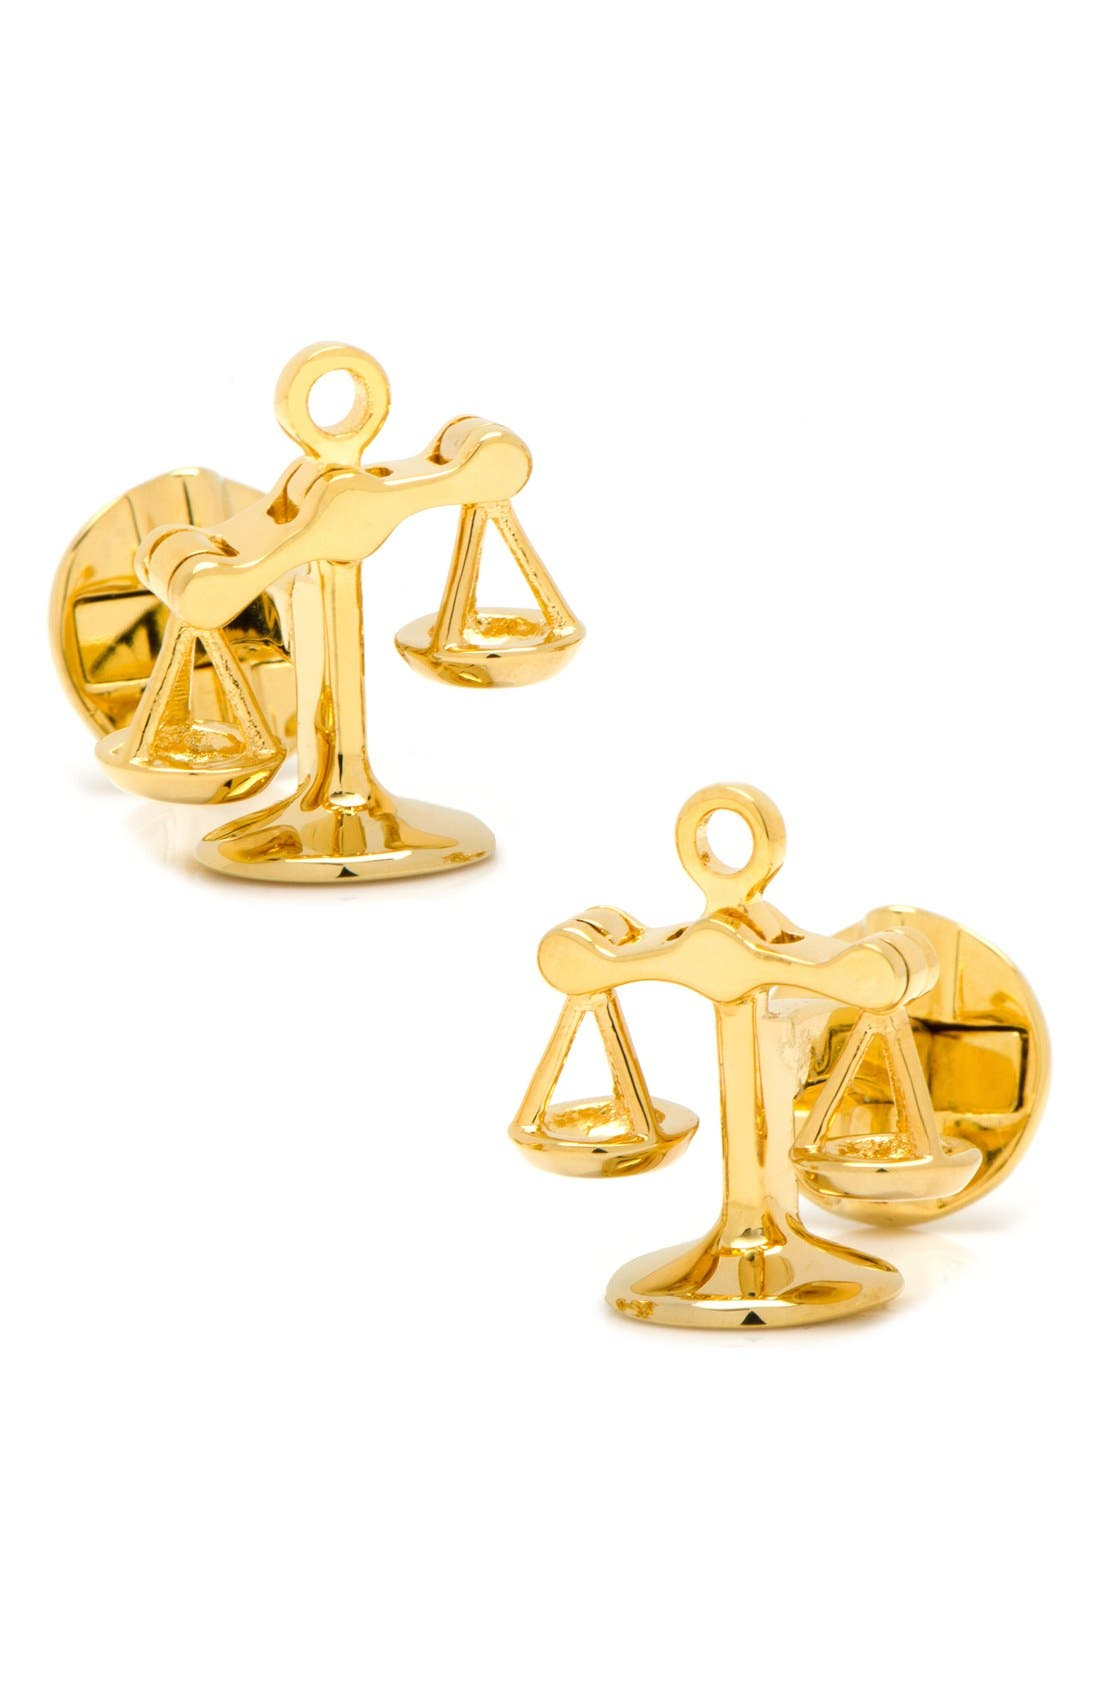 Alternate Image 1 Selected - Ox and Bull Trading Co. 'Scales of Justice' Cuff Links